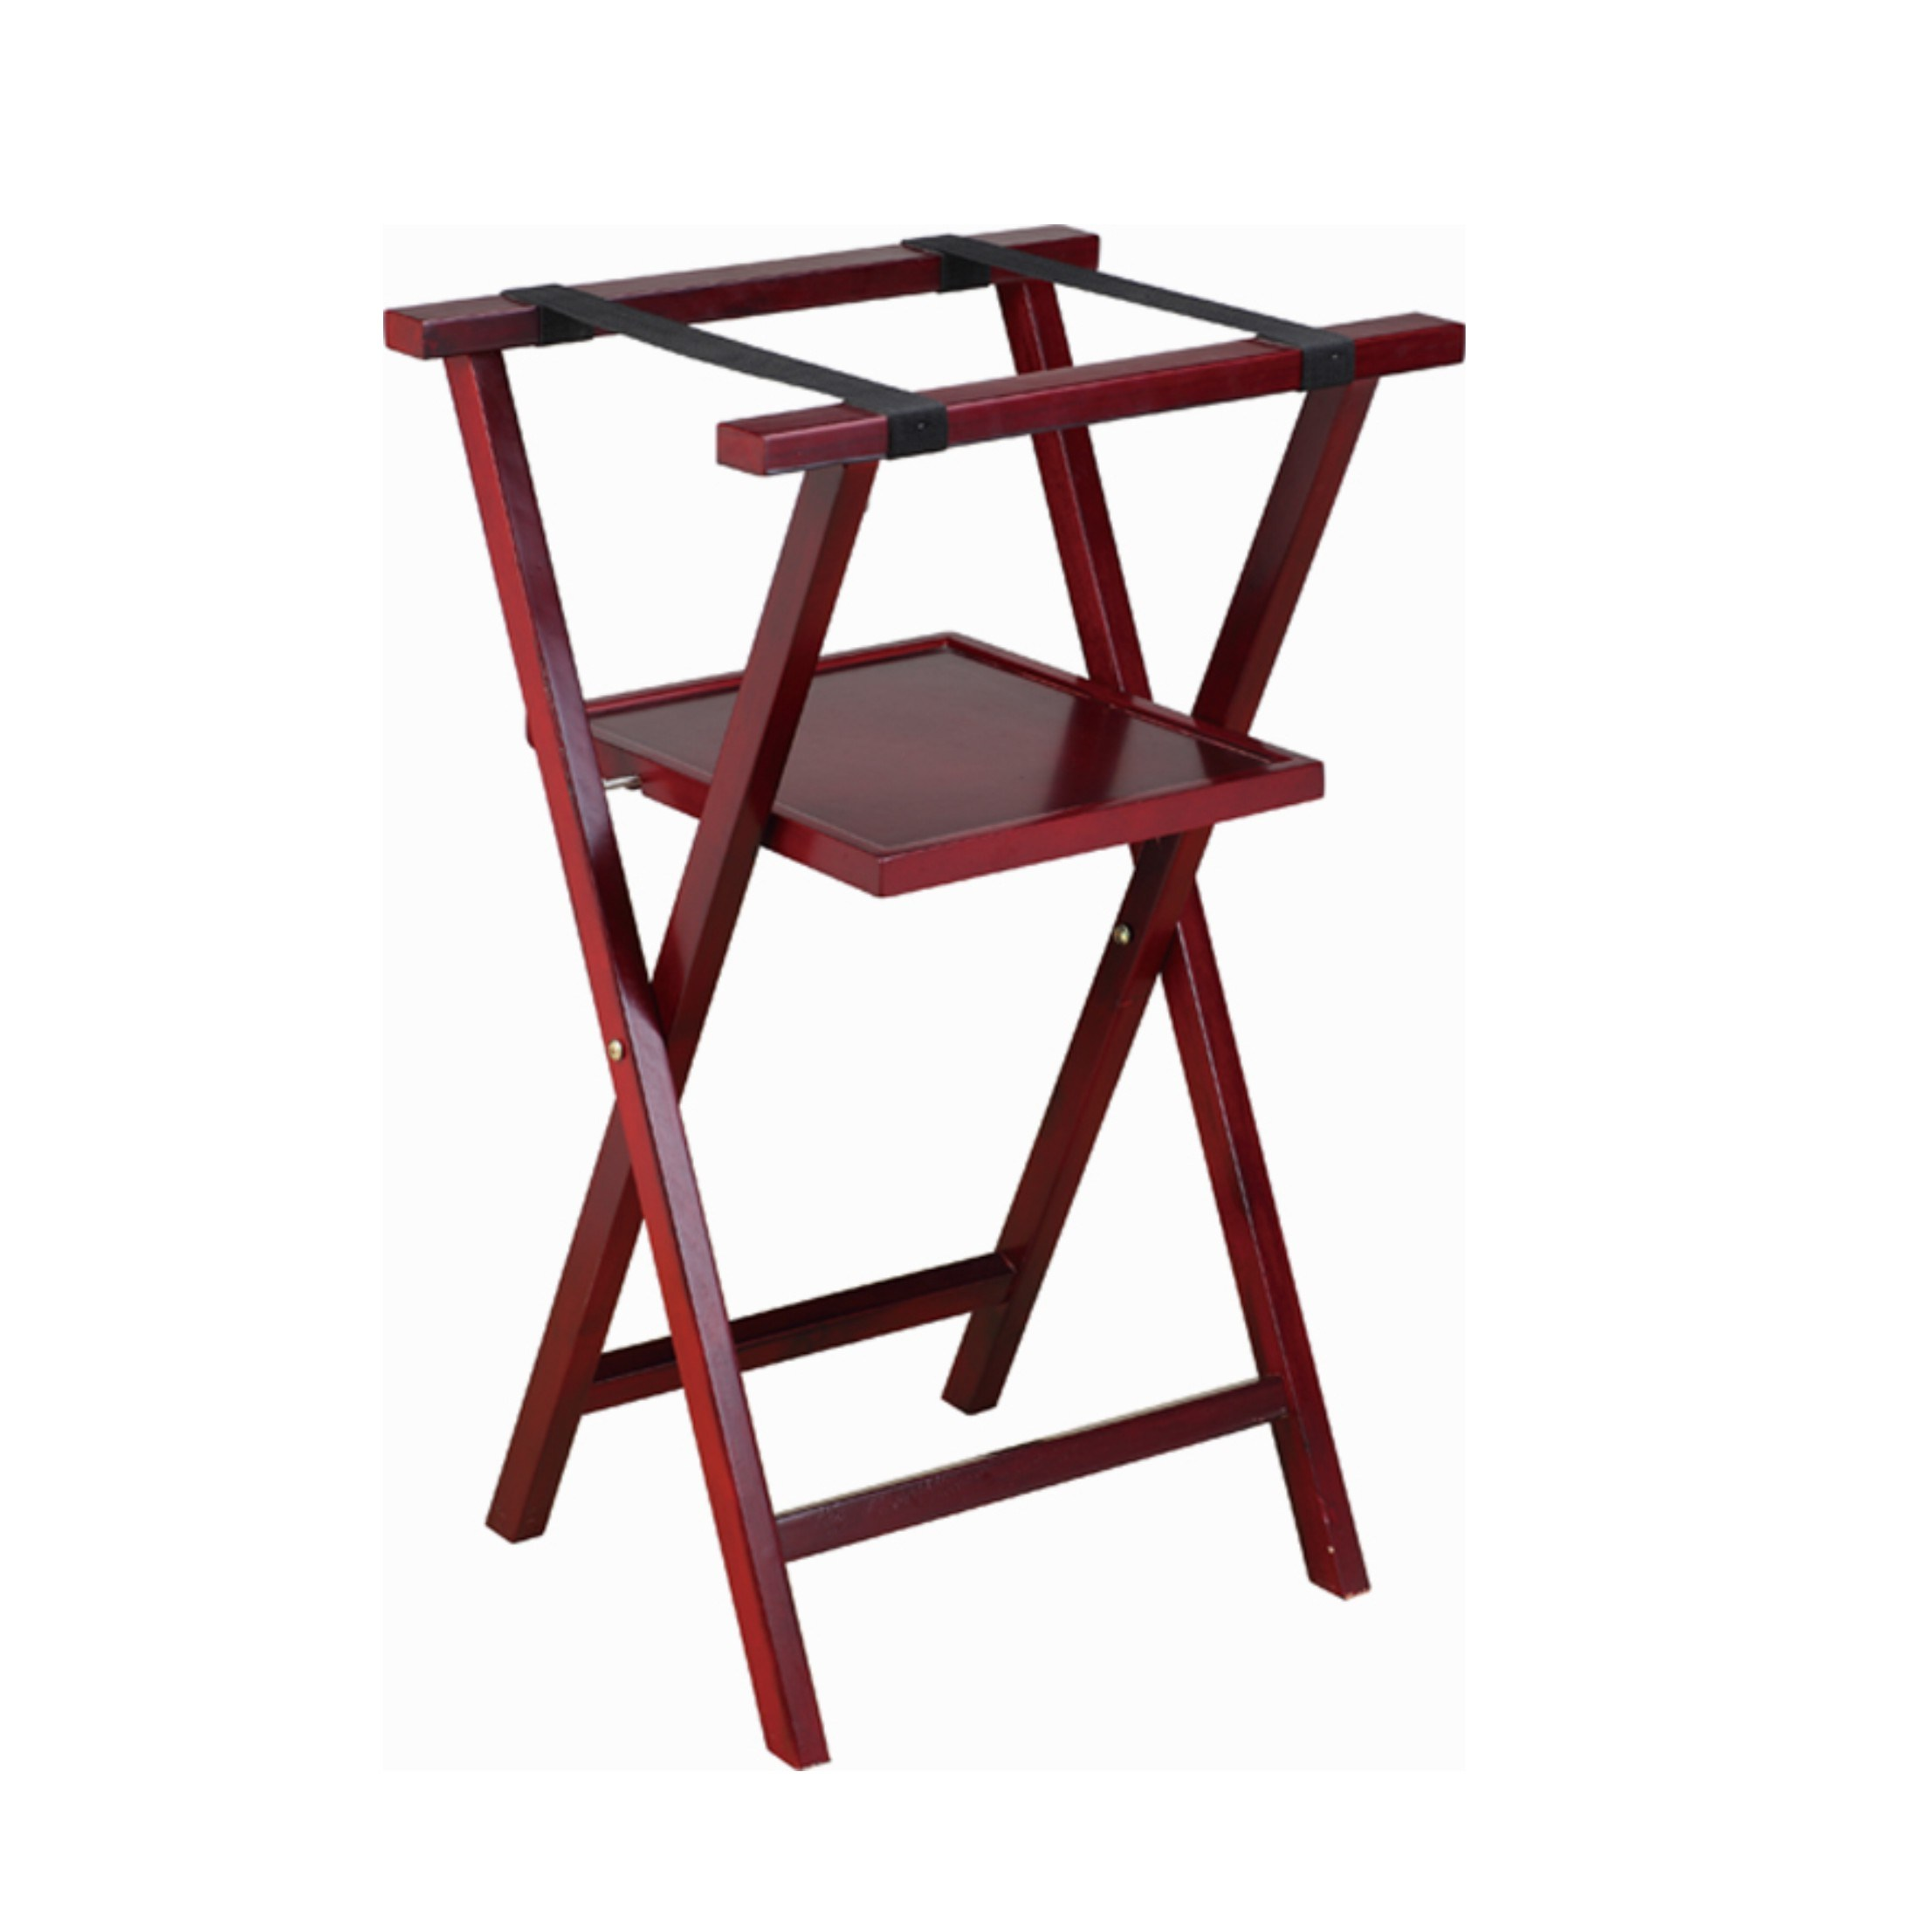 Image of: China Luggage Rack For Guestroom With Wooden Cj 27b China Luggage Rack Wooden Rack